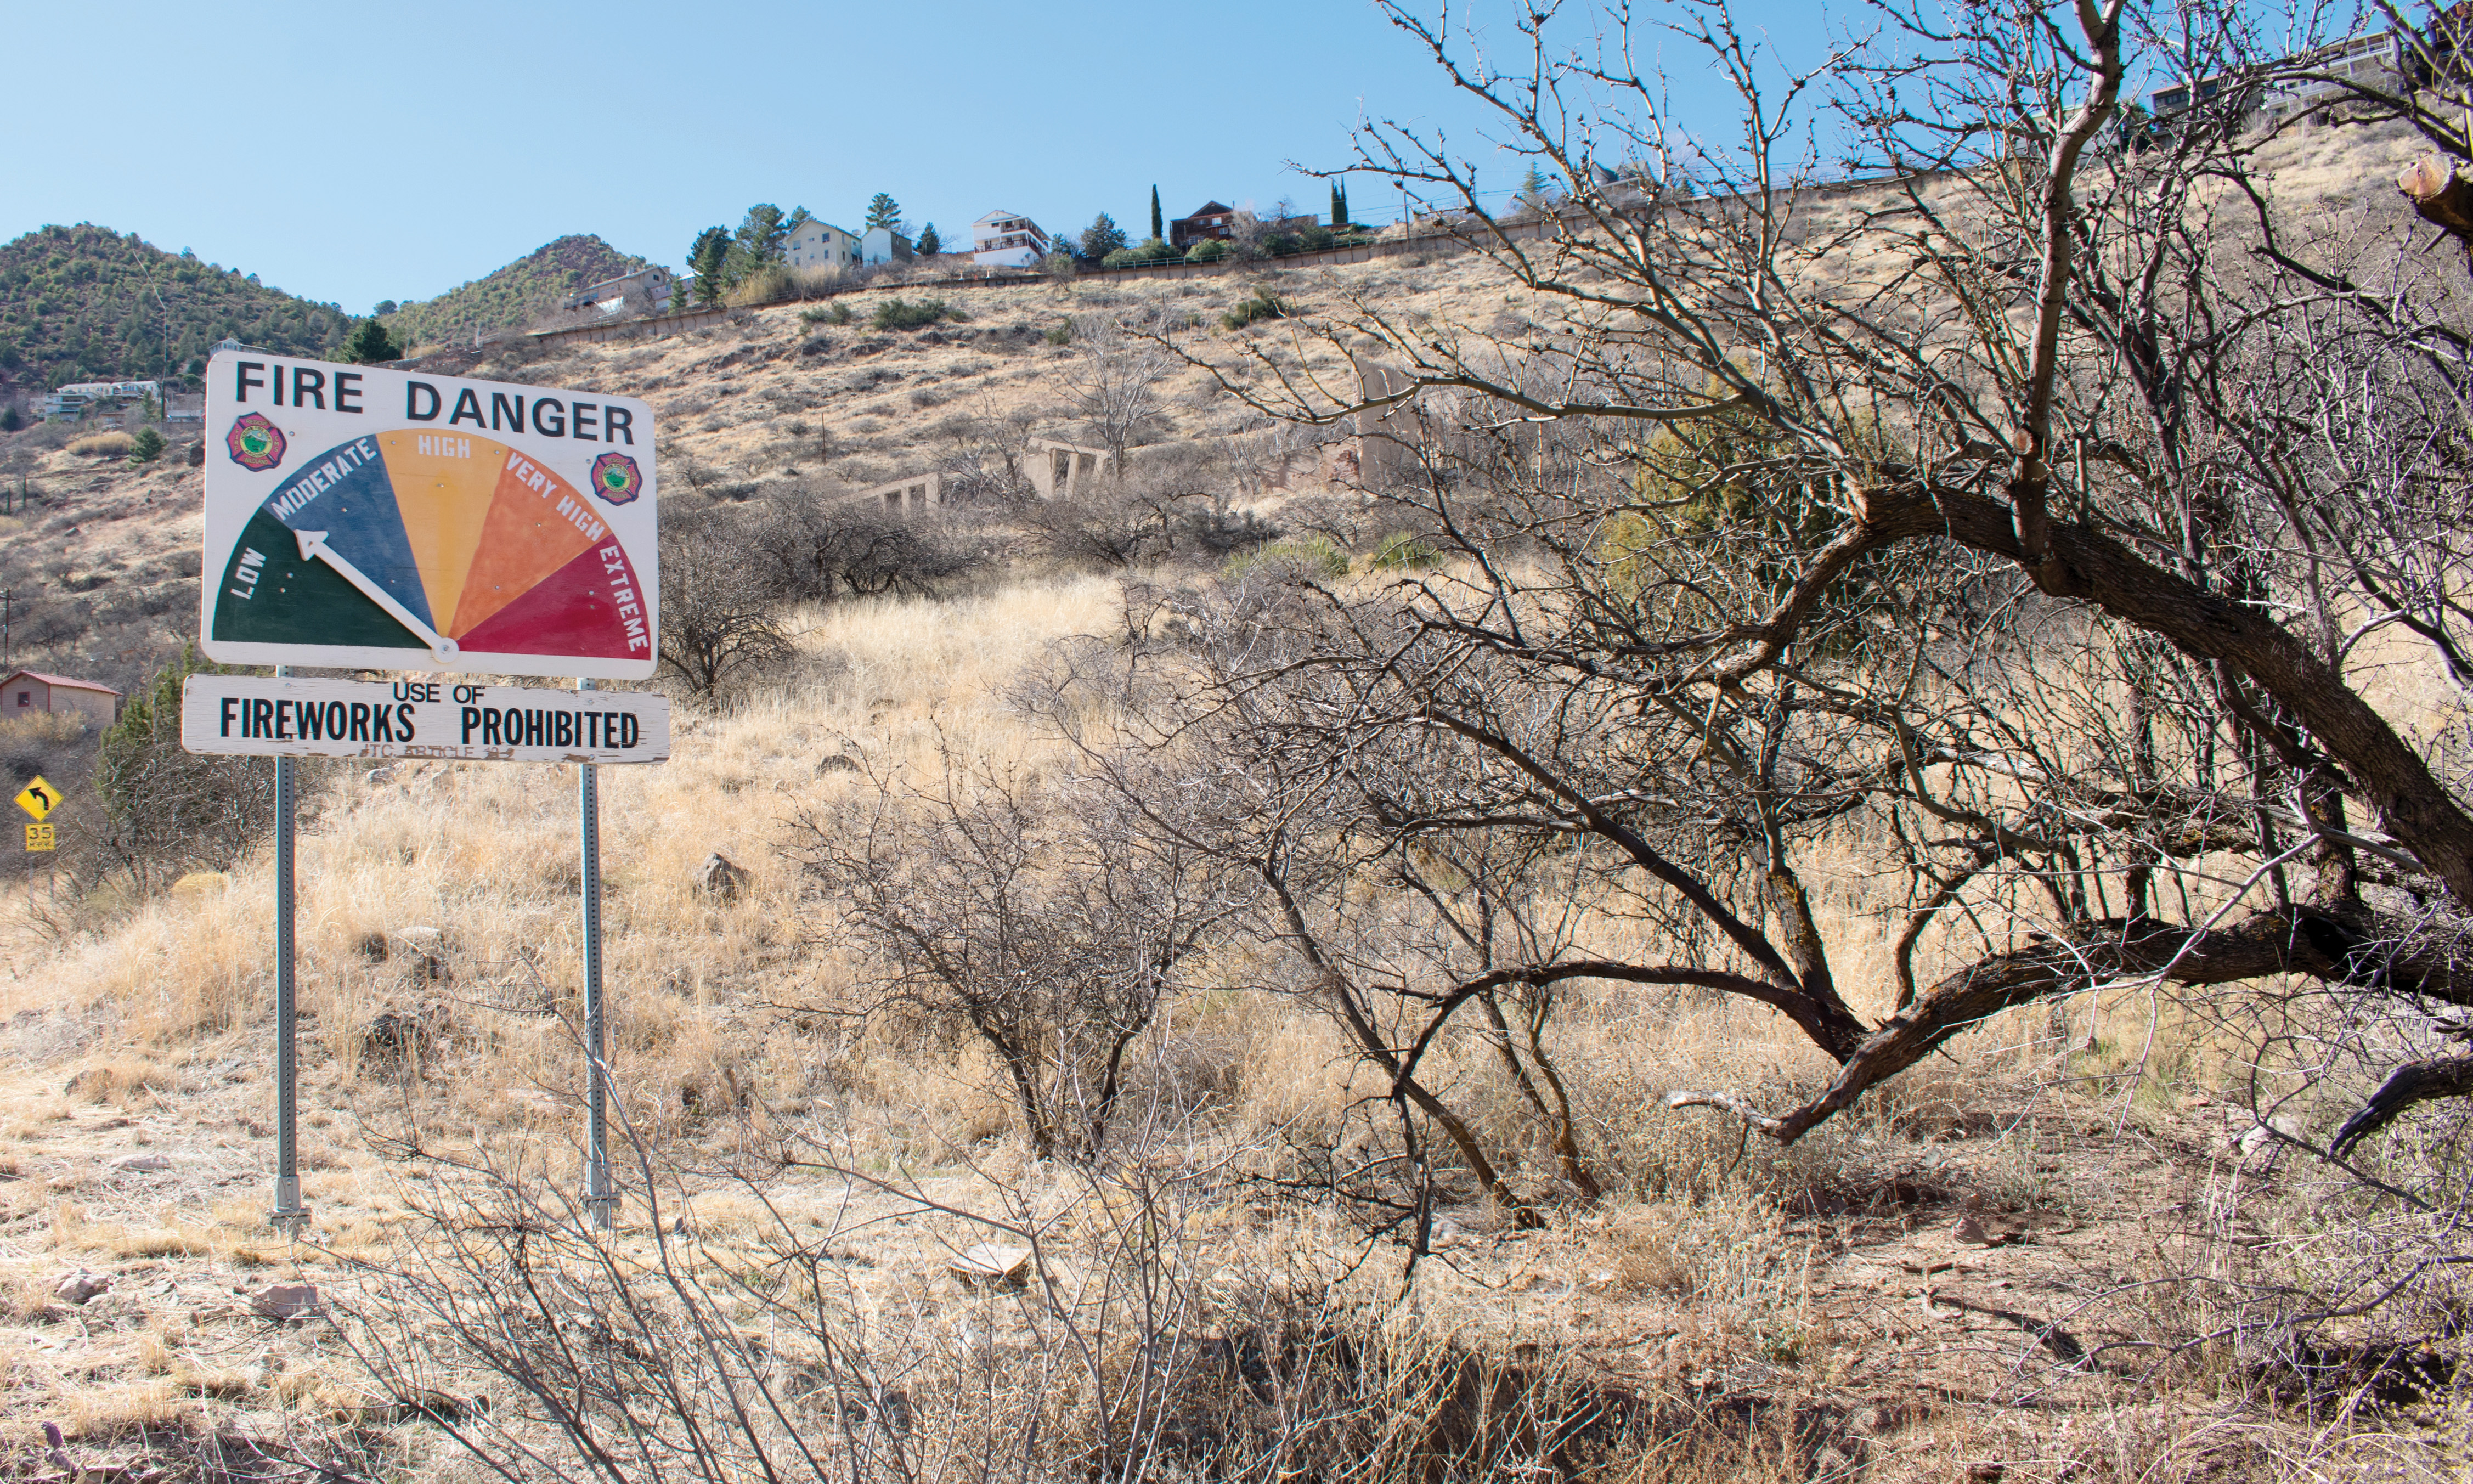 Cottonwood Az Elevation : Lack of precipitation in the verde valley how will fire